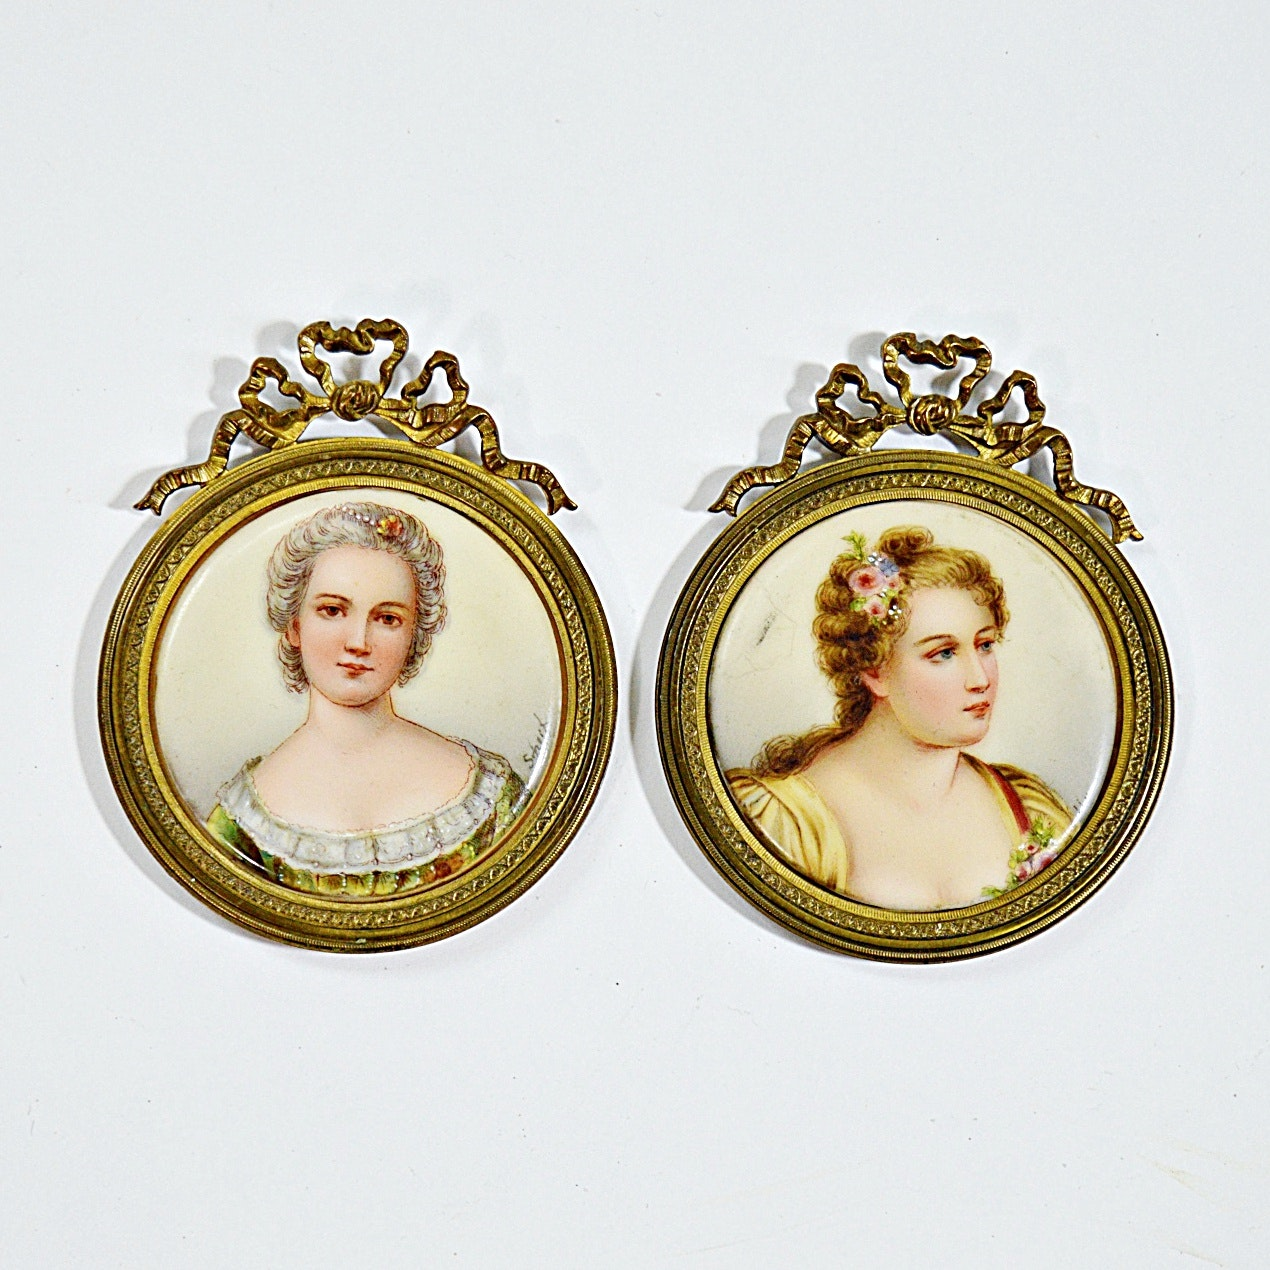 Pair of Antique Hand Painted Signed Portraits on Porcelain